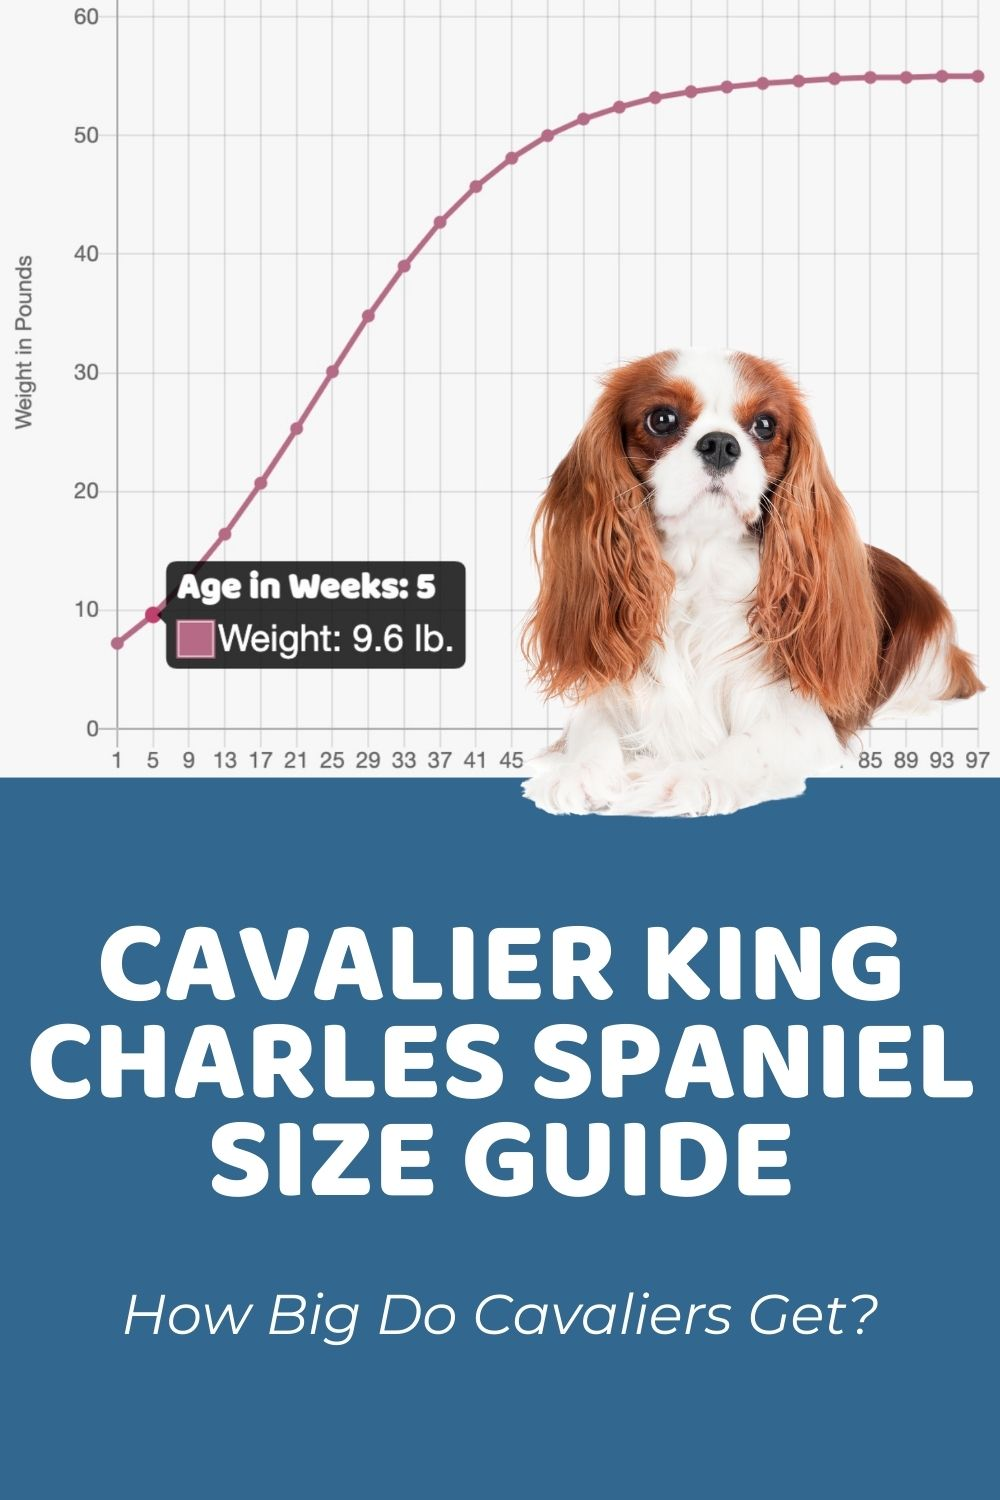 Cavalier King Charles Spaniel Size Guide_ How Big Do Cavaliers Get_